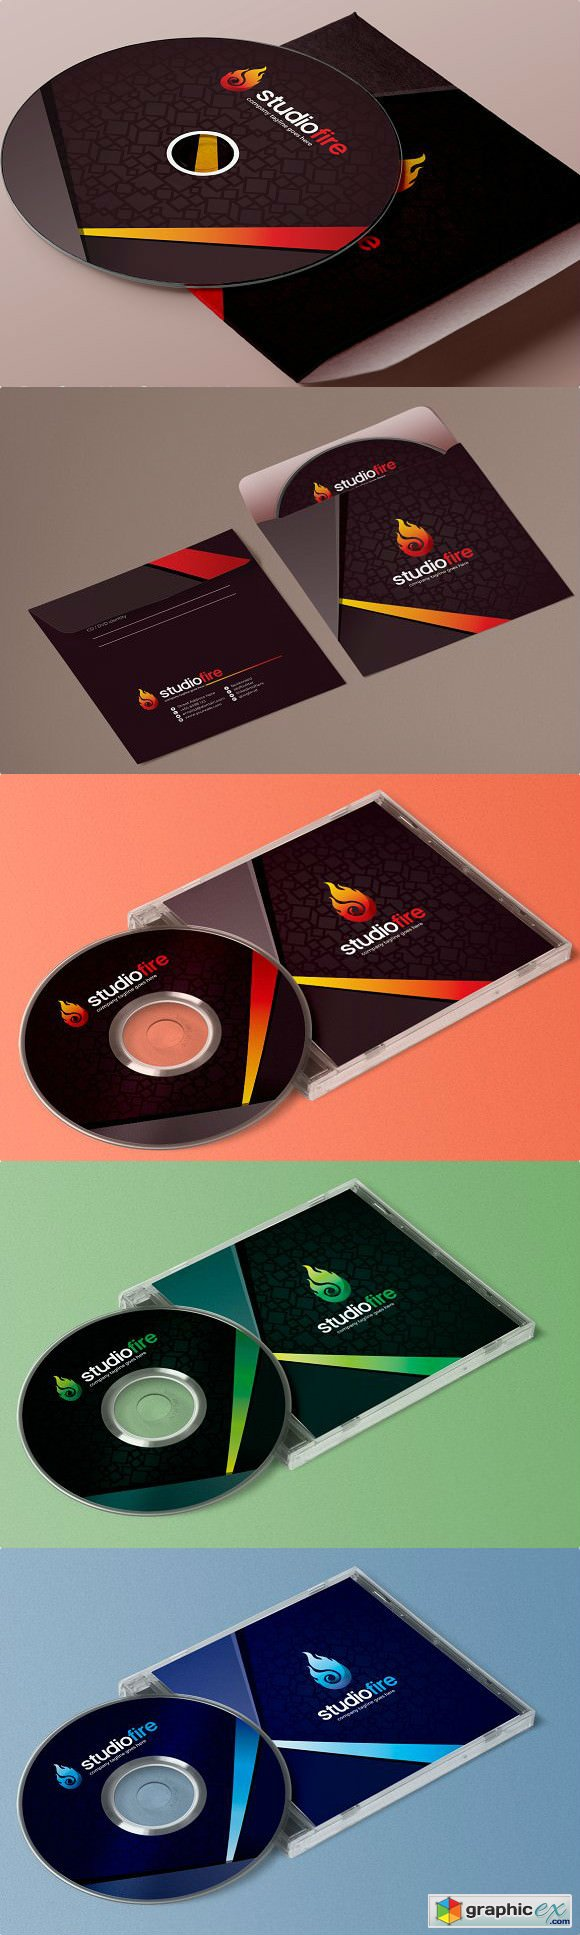 CD DVD Album Cover Design Template